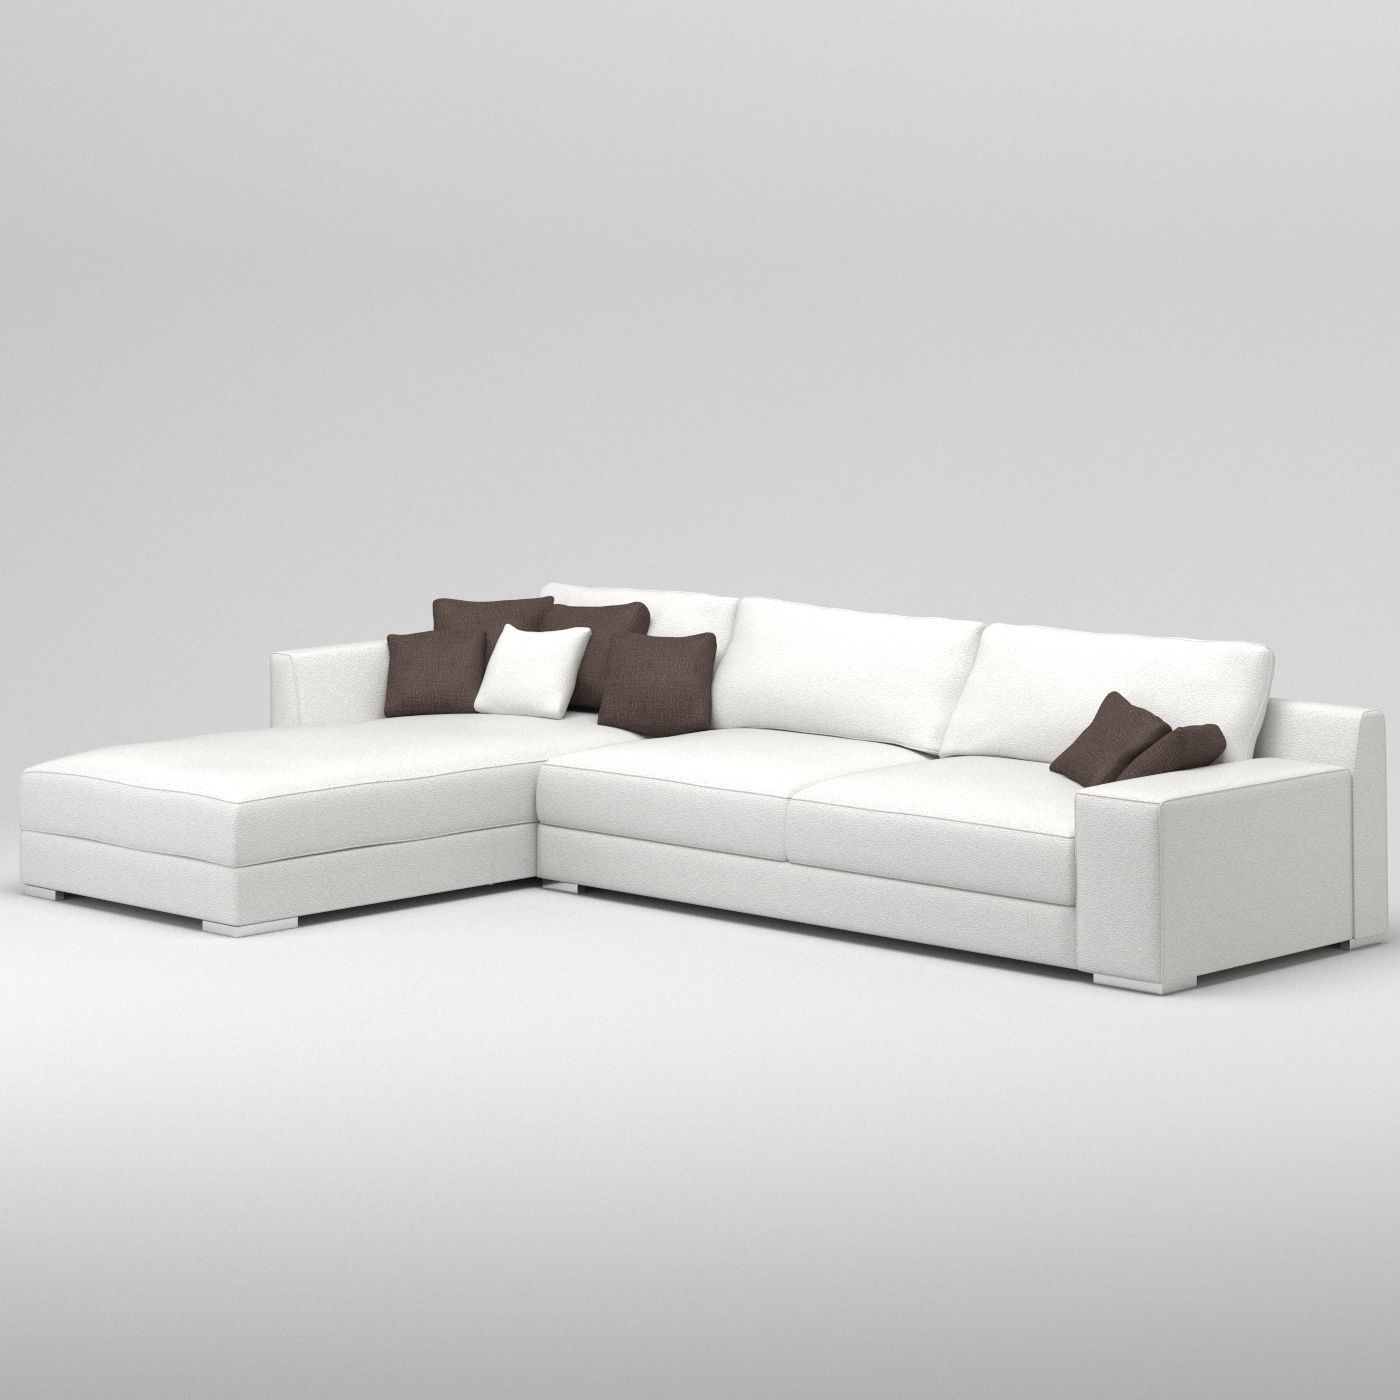 Recent Furniture : Couchtuner Queen Sugar Sectional Sofa Greenville Sc In Sectional Sofas In Greenville Sc (View 5 of 15)